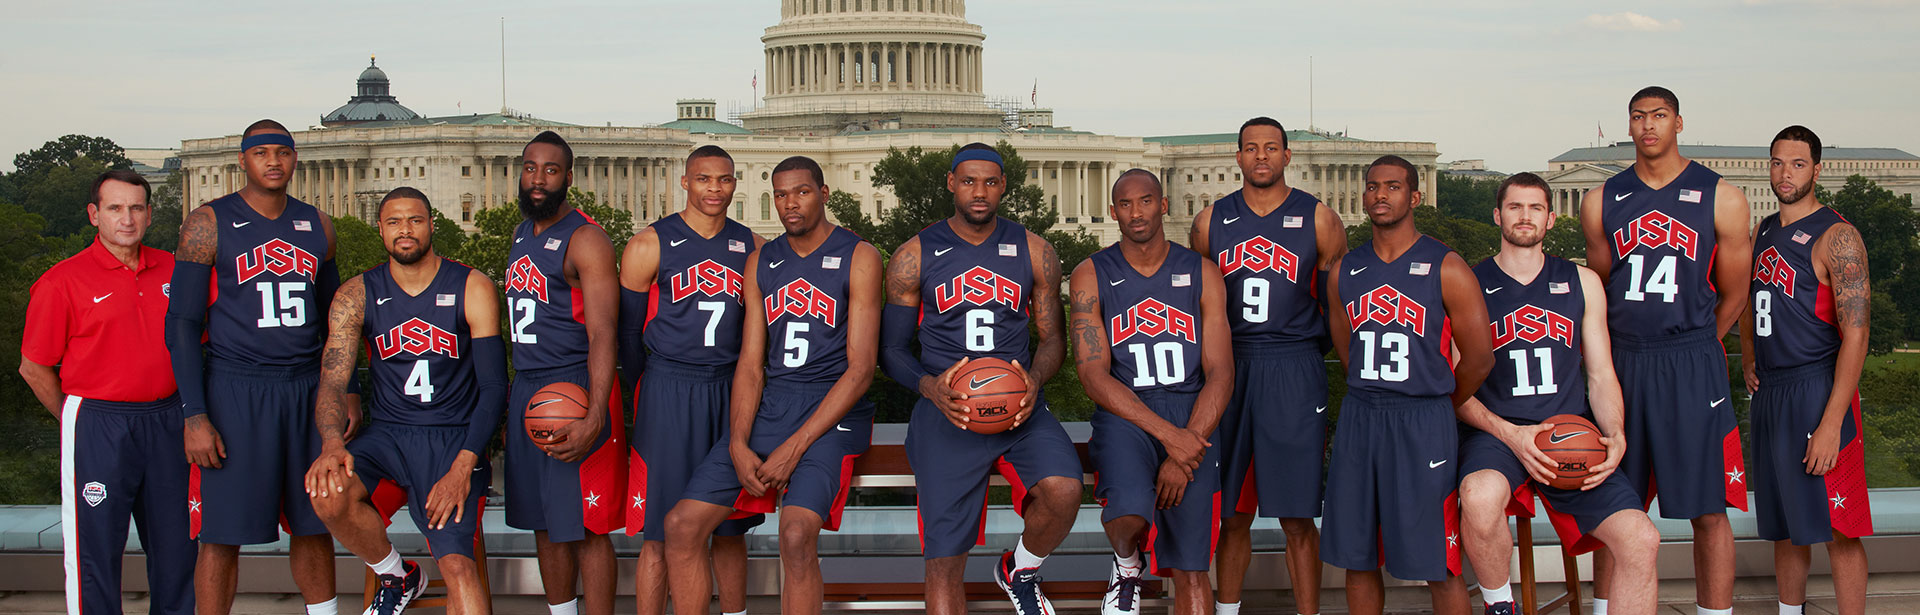 2012-Olympic-Team-DC2